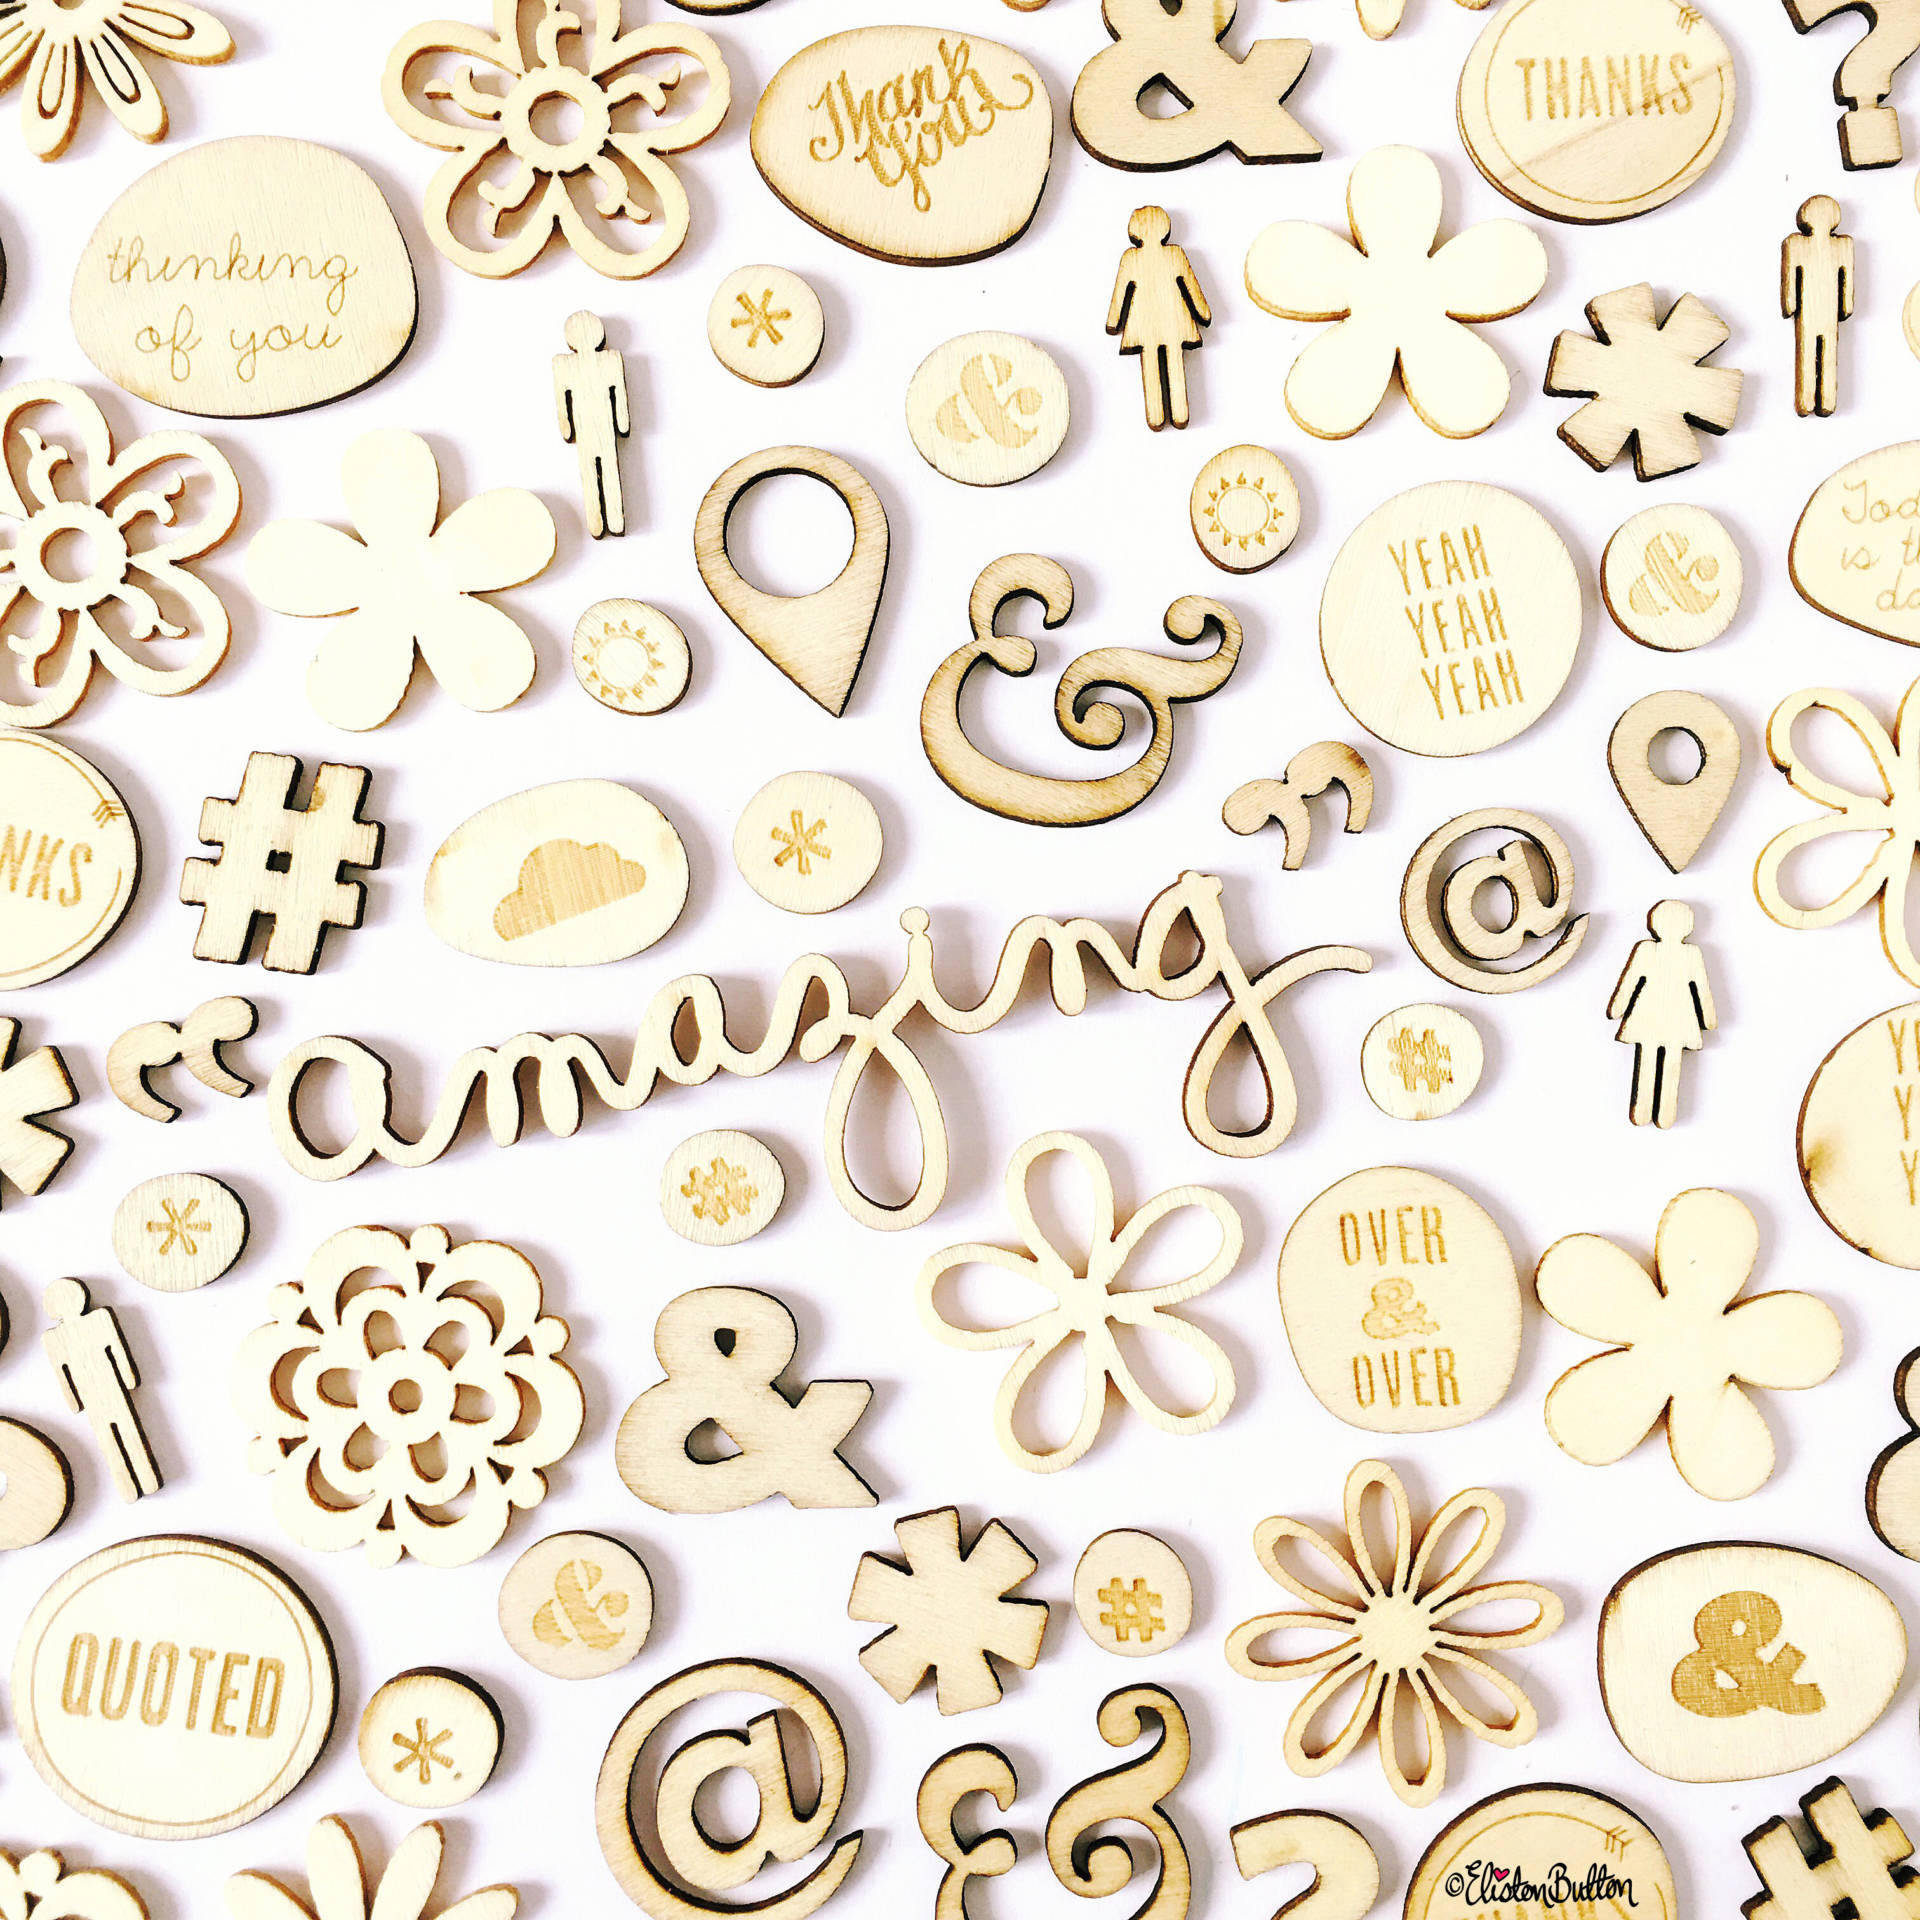 Day 22 - V is For...Veneers - Studio Calico and American Crafts Wooden Scrapbooking Embellishments - Photo-a-Day - July 2016 - Eliston Button A-Z of Craft at www.elistonbutton.com - Eliston Button - That Crafty Kid – Art, Design, Craft & Adventure.